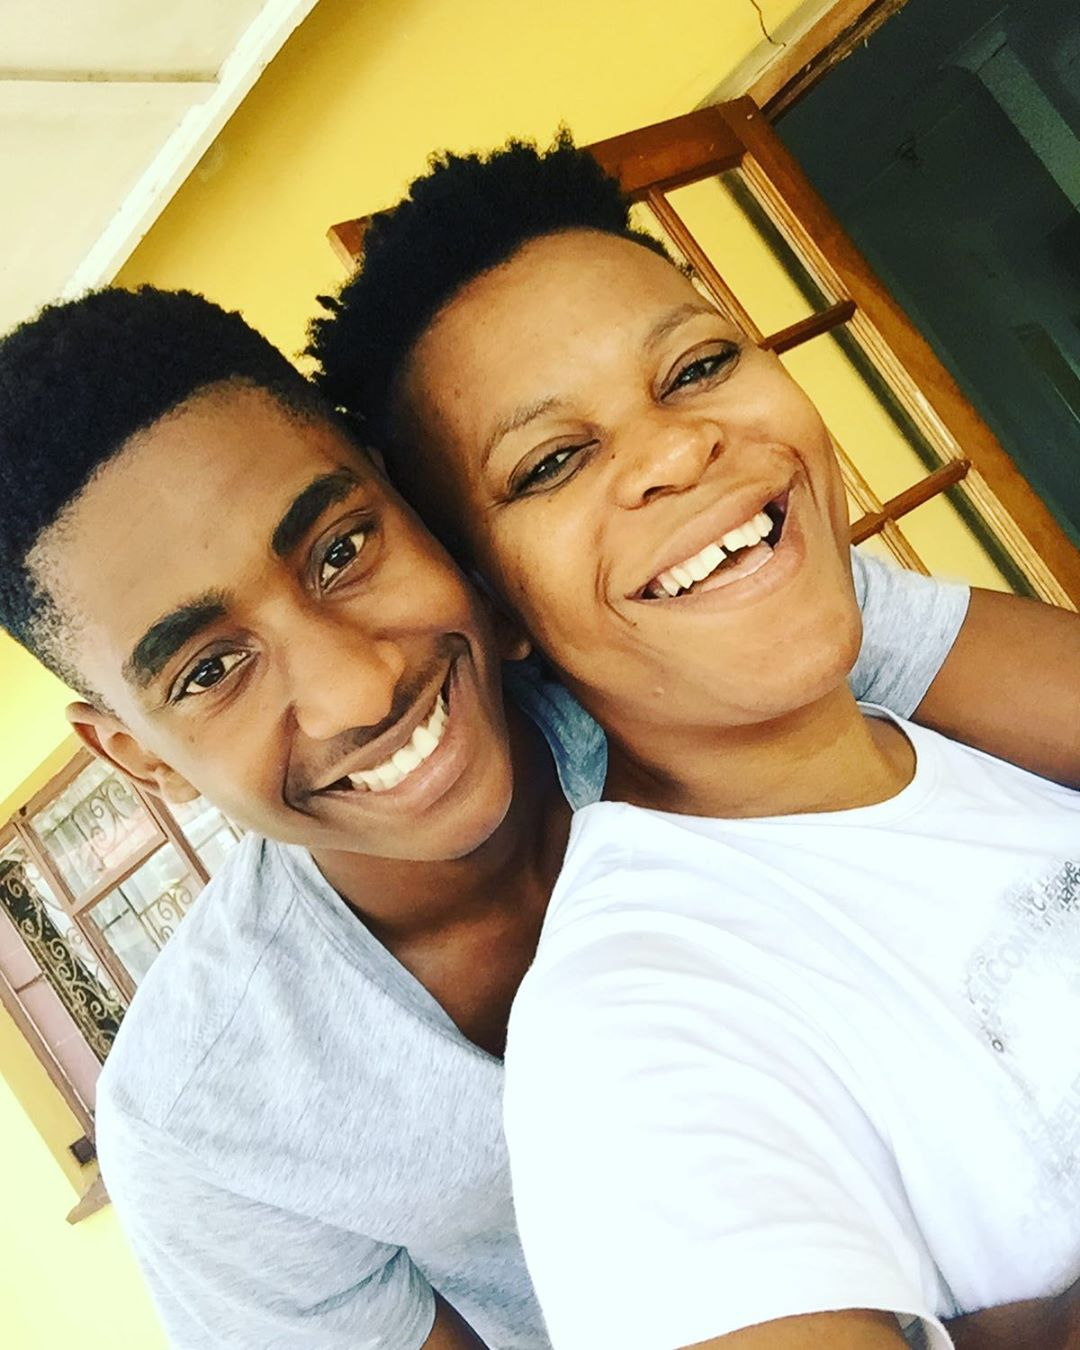 Opinion | Preference or Paedophile: Where Does Zodwa Wabantu's Love For Ben 10s Fall?